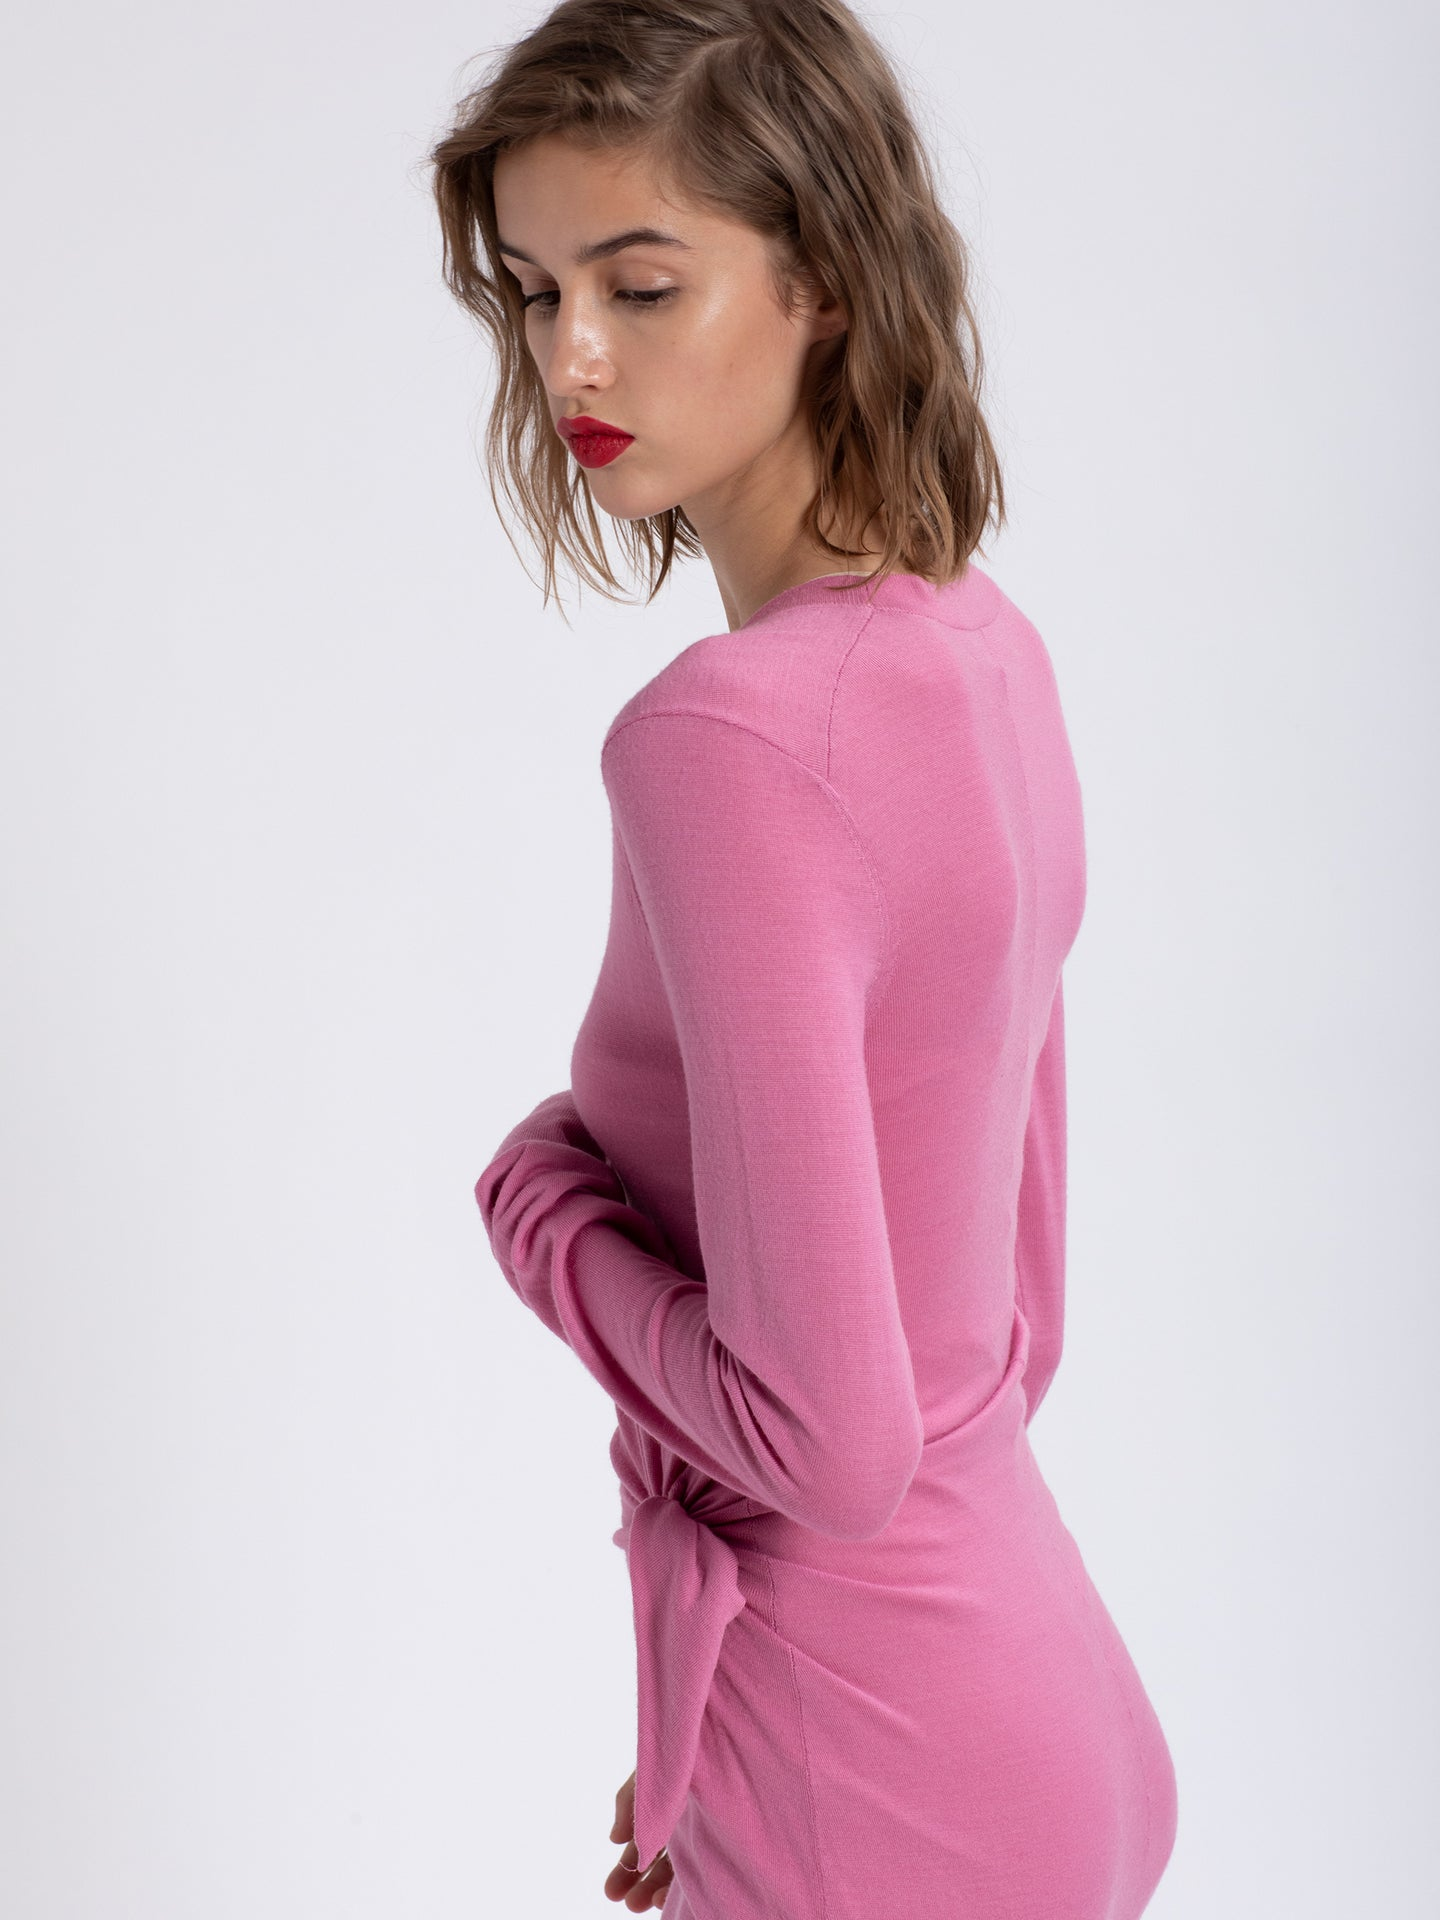 Selma Superfine Merino Dress